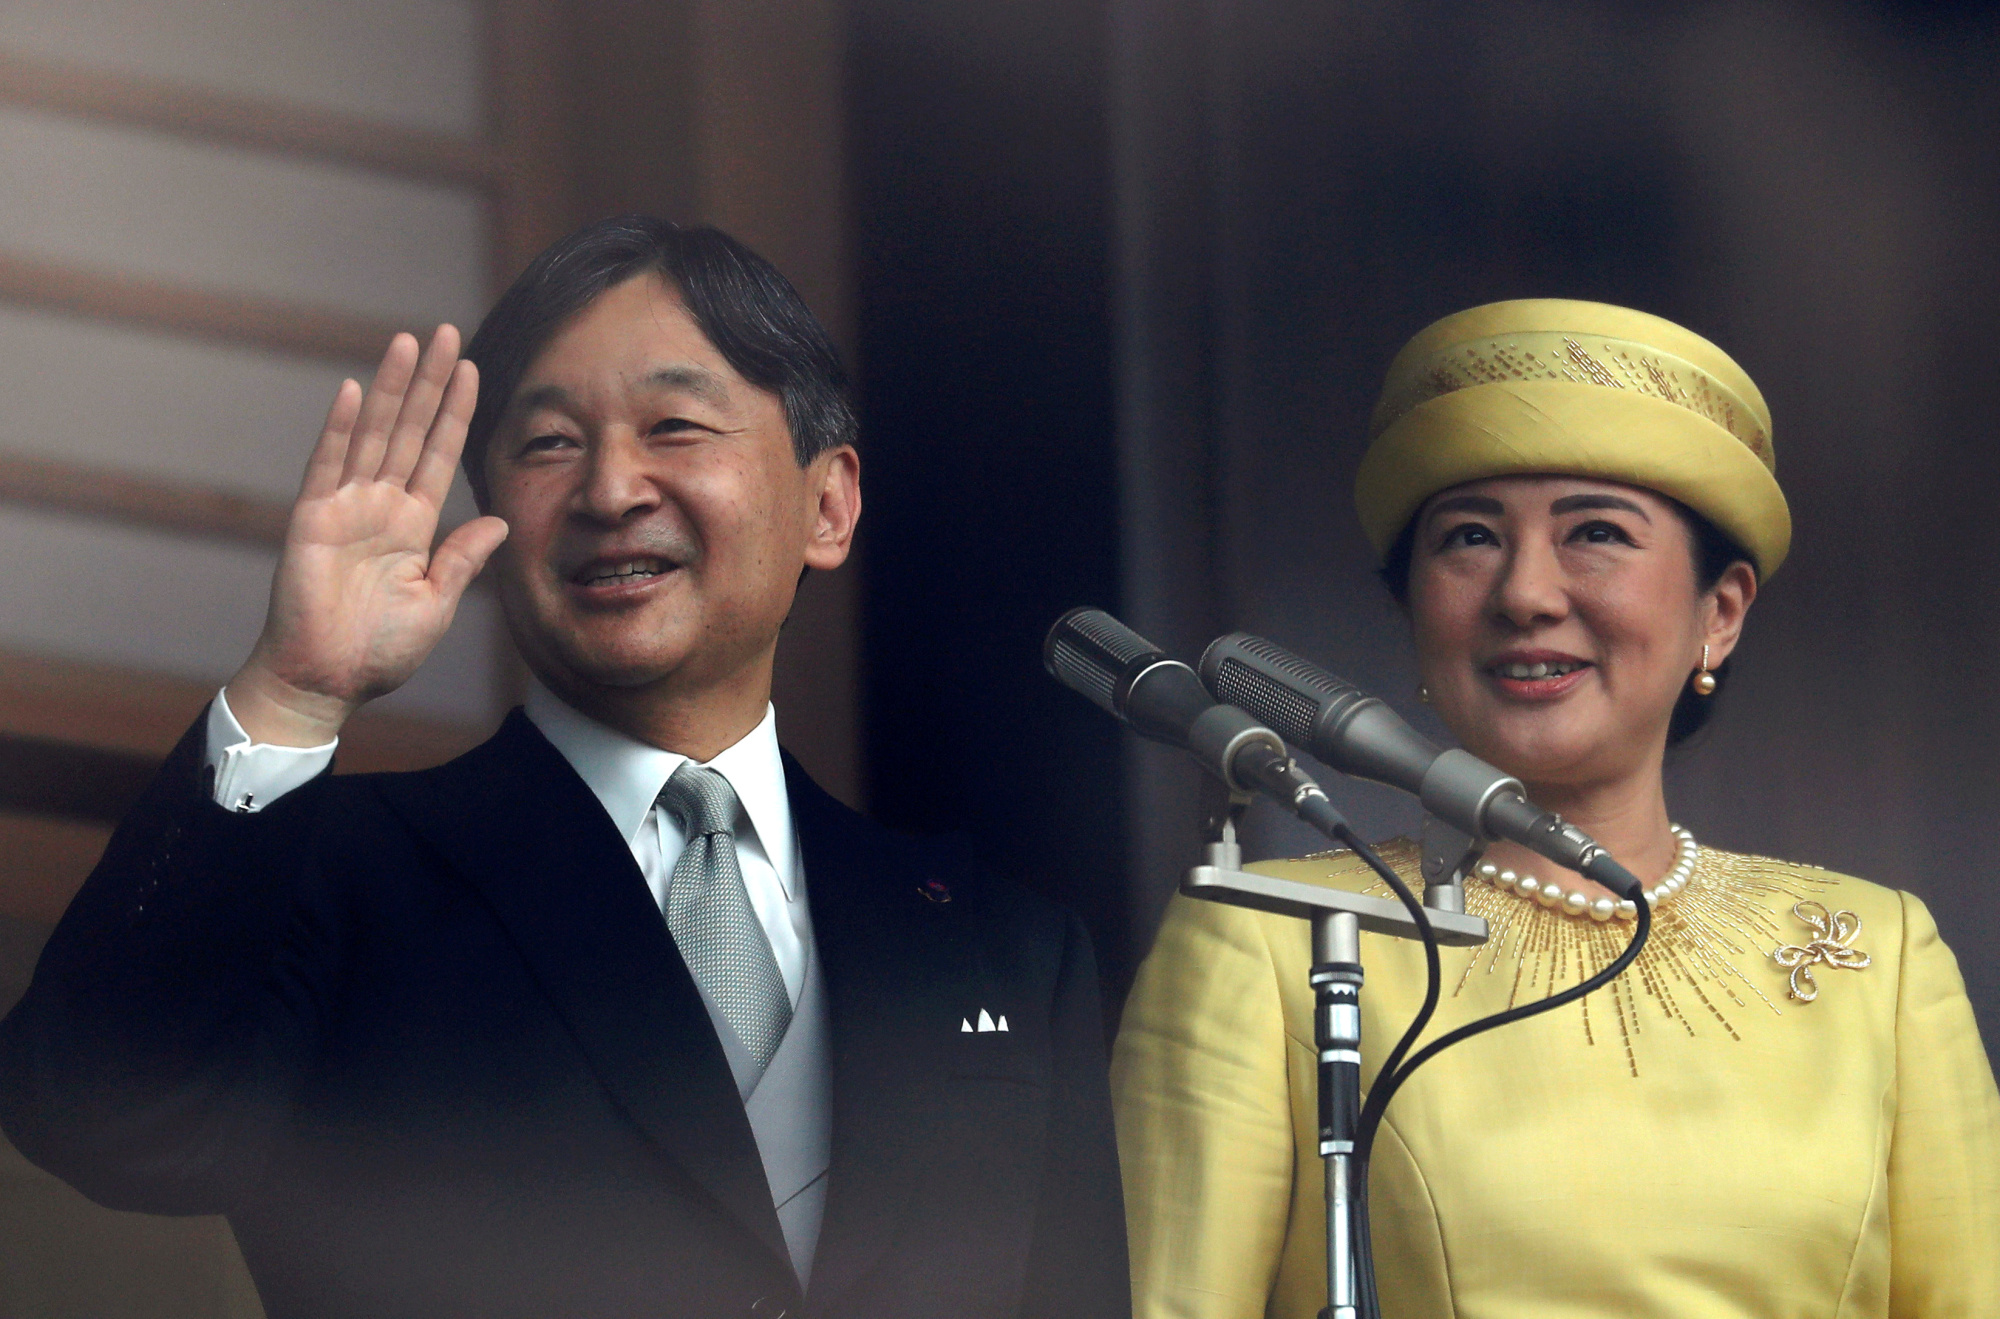 Emperor Naruhito and Empress Masako greet well-wishers during their first public appearance at the Imperial Palace in Tokyo on May 4.   REUTERS